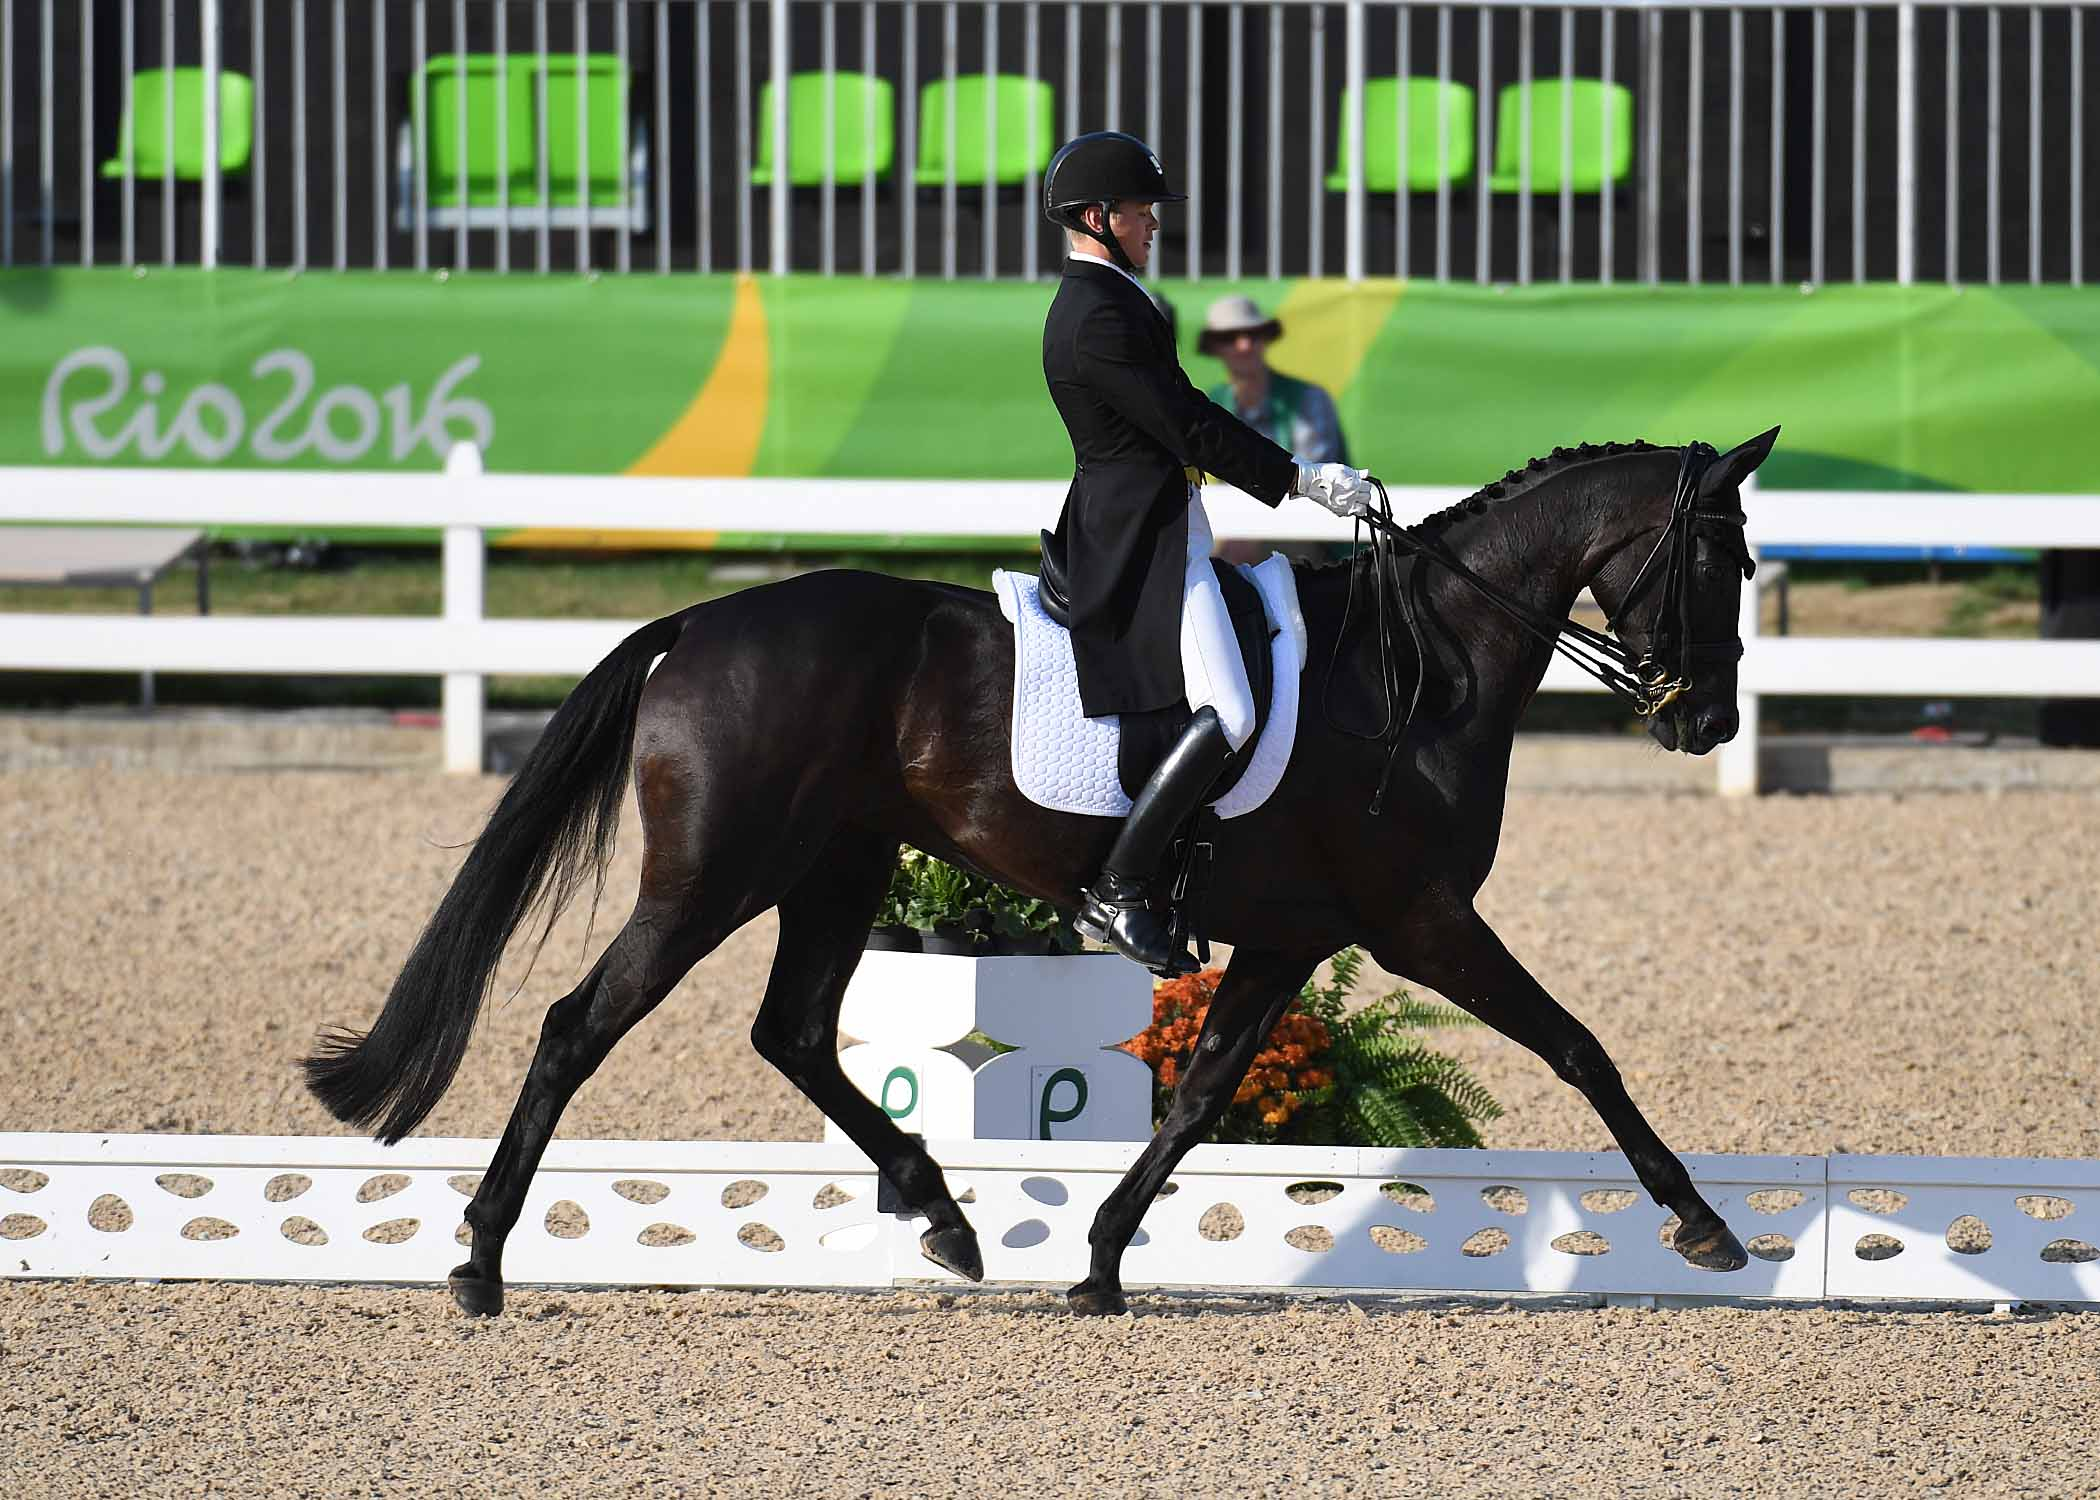 Elmo Jankari FIN riding Duchess Desiree, during the dressage phase of the Eventing Competition of the Rio 2016 Olympic Games at the Olympic Equestrian Eyestrain Centre in Deodoro near Rio, Brazil on 6th August 2016